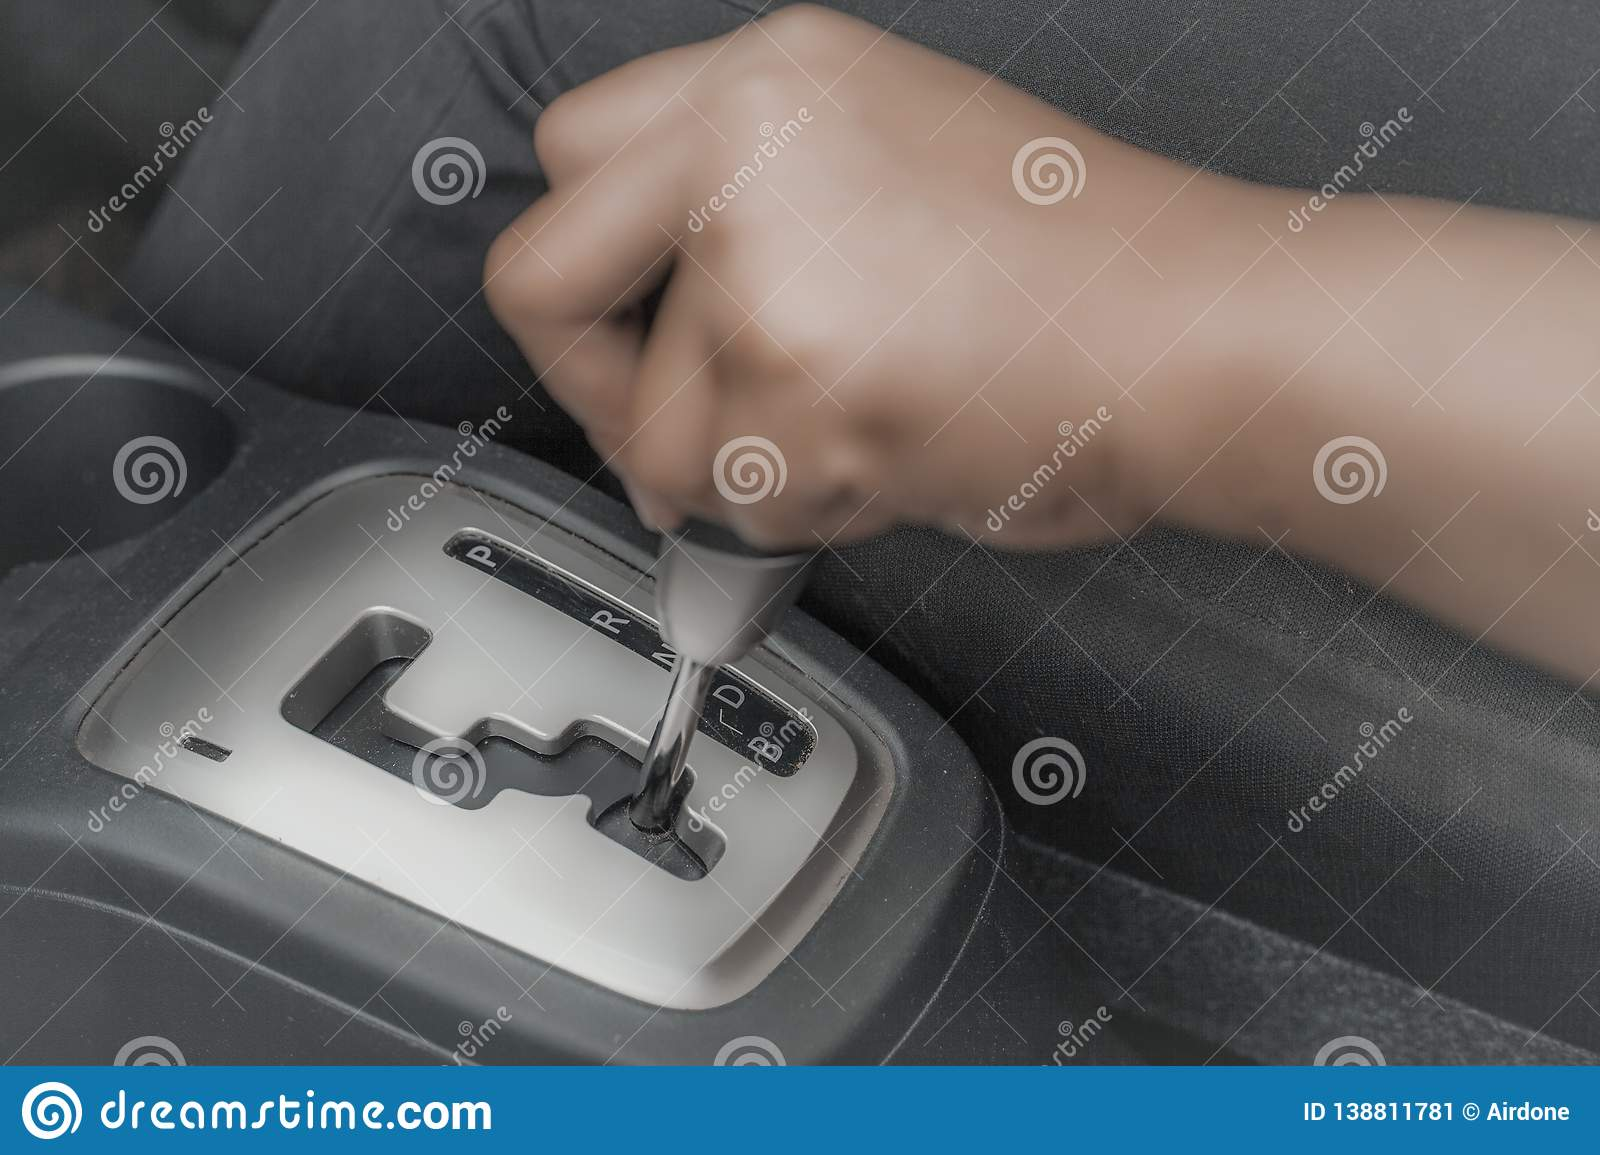 Automatic Car Gear Shift Transmission Stock Image - Image of